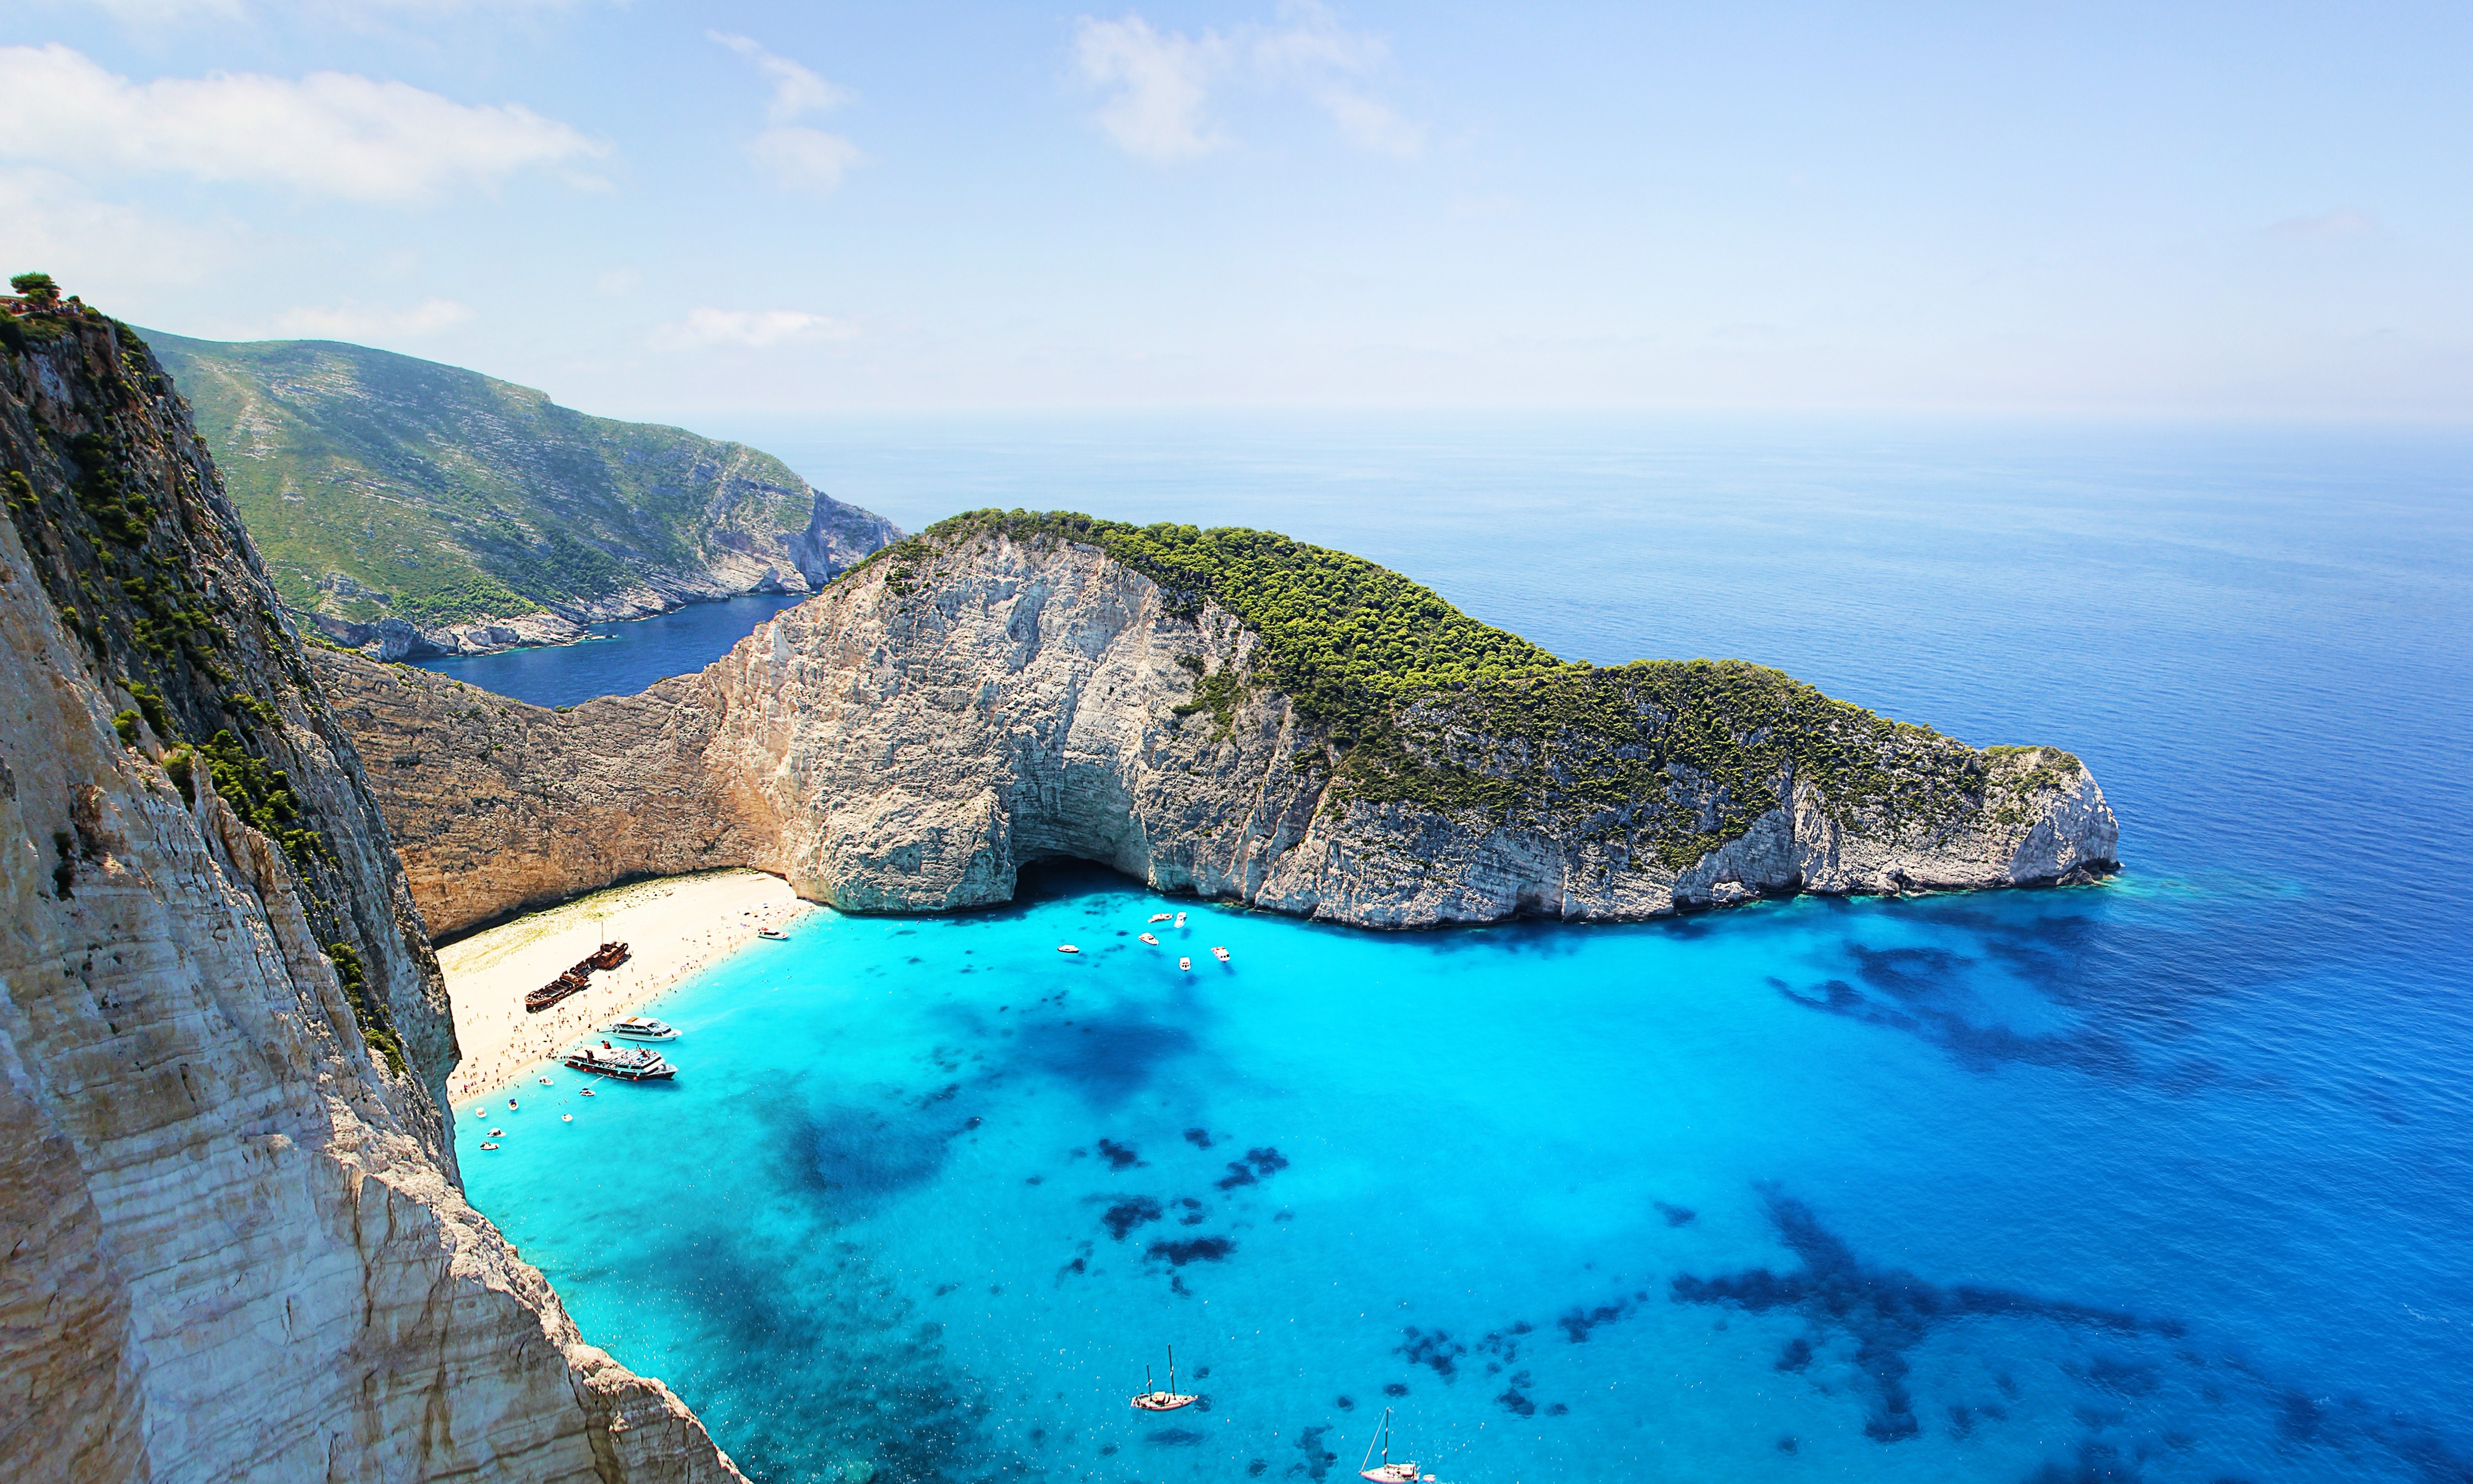 Clear Blue Sea, Bay, Scenic, Water, Vacation, HQ Photo